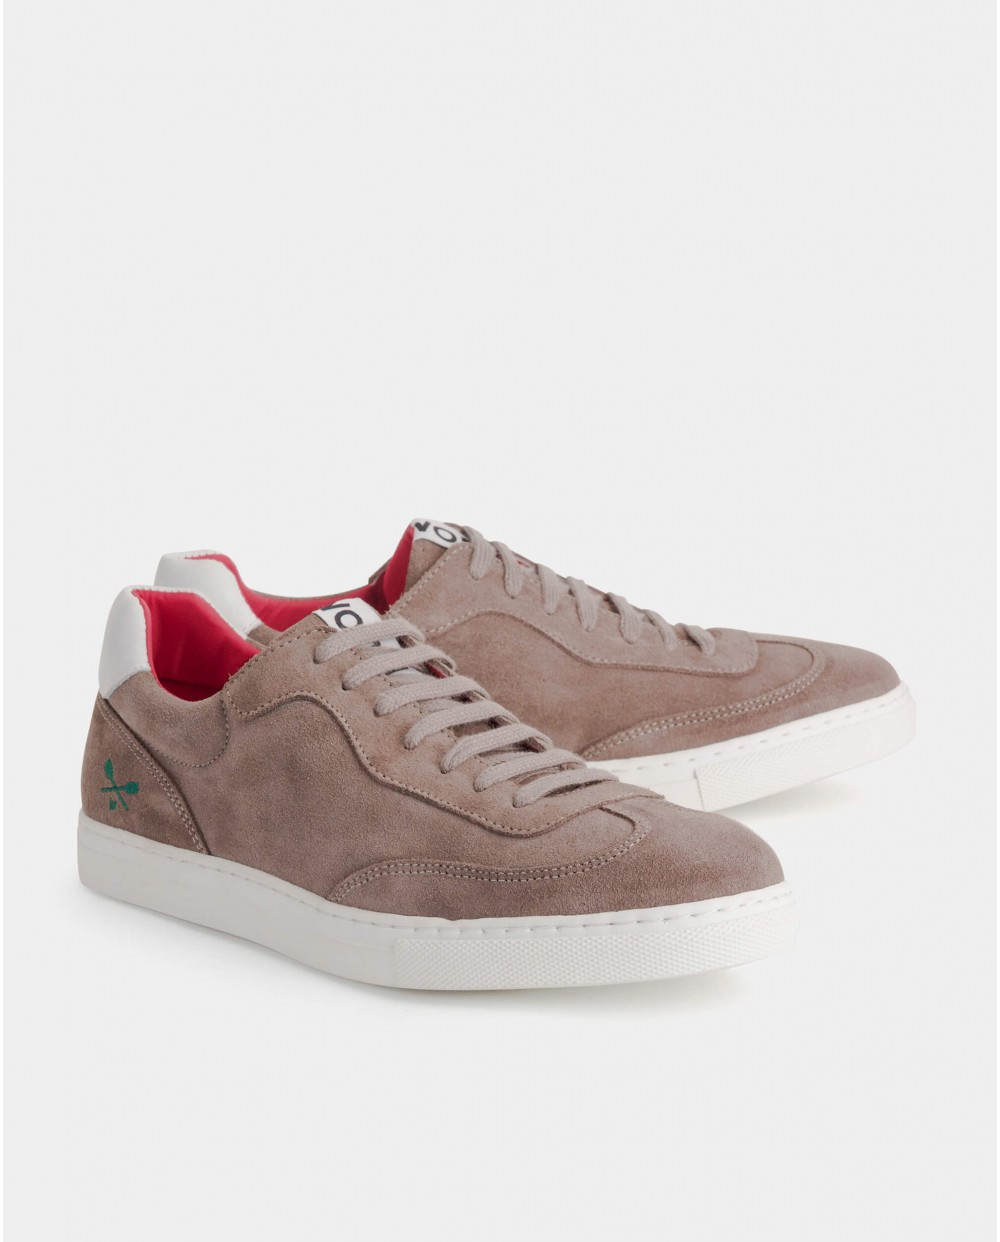 Wonders-Sneakers-Suede leather sneaker with shoelace closure